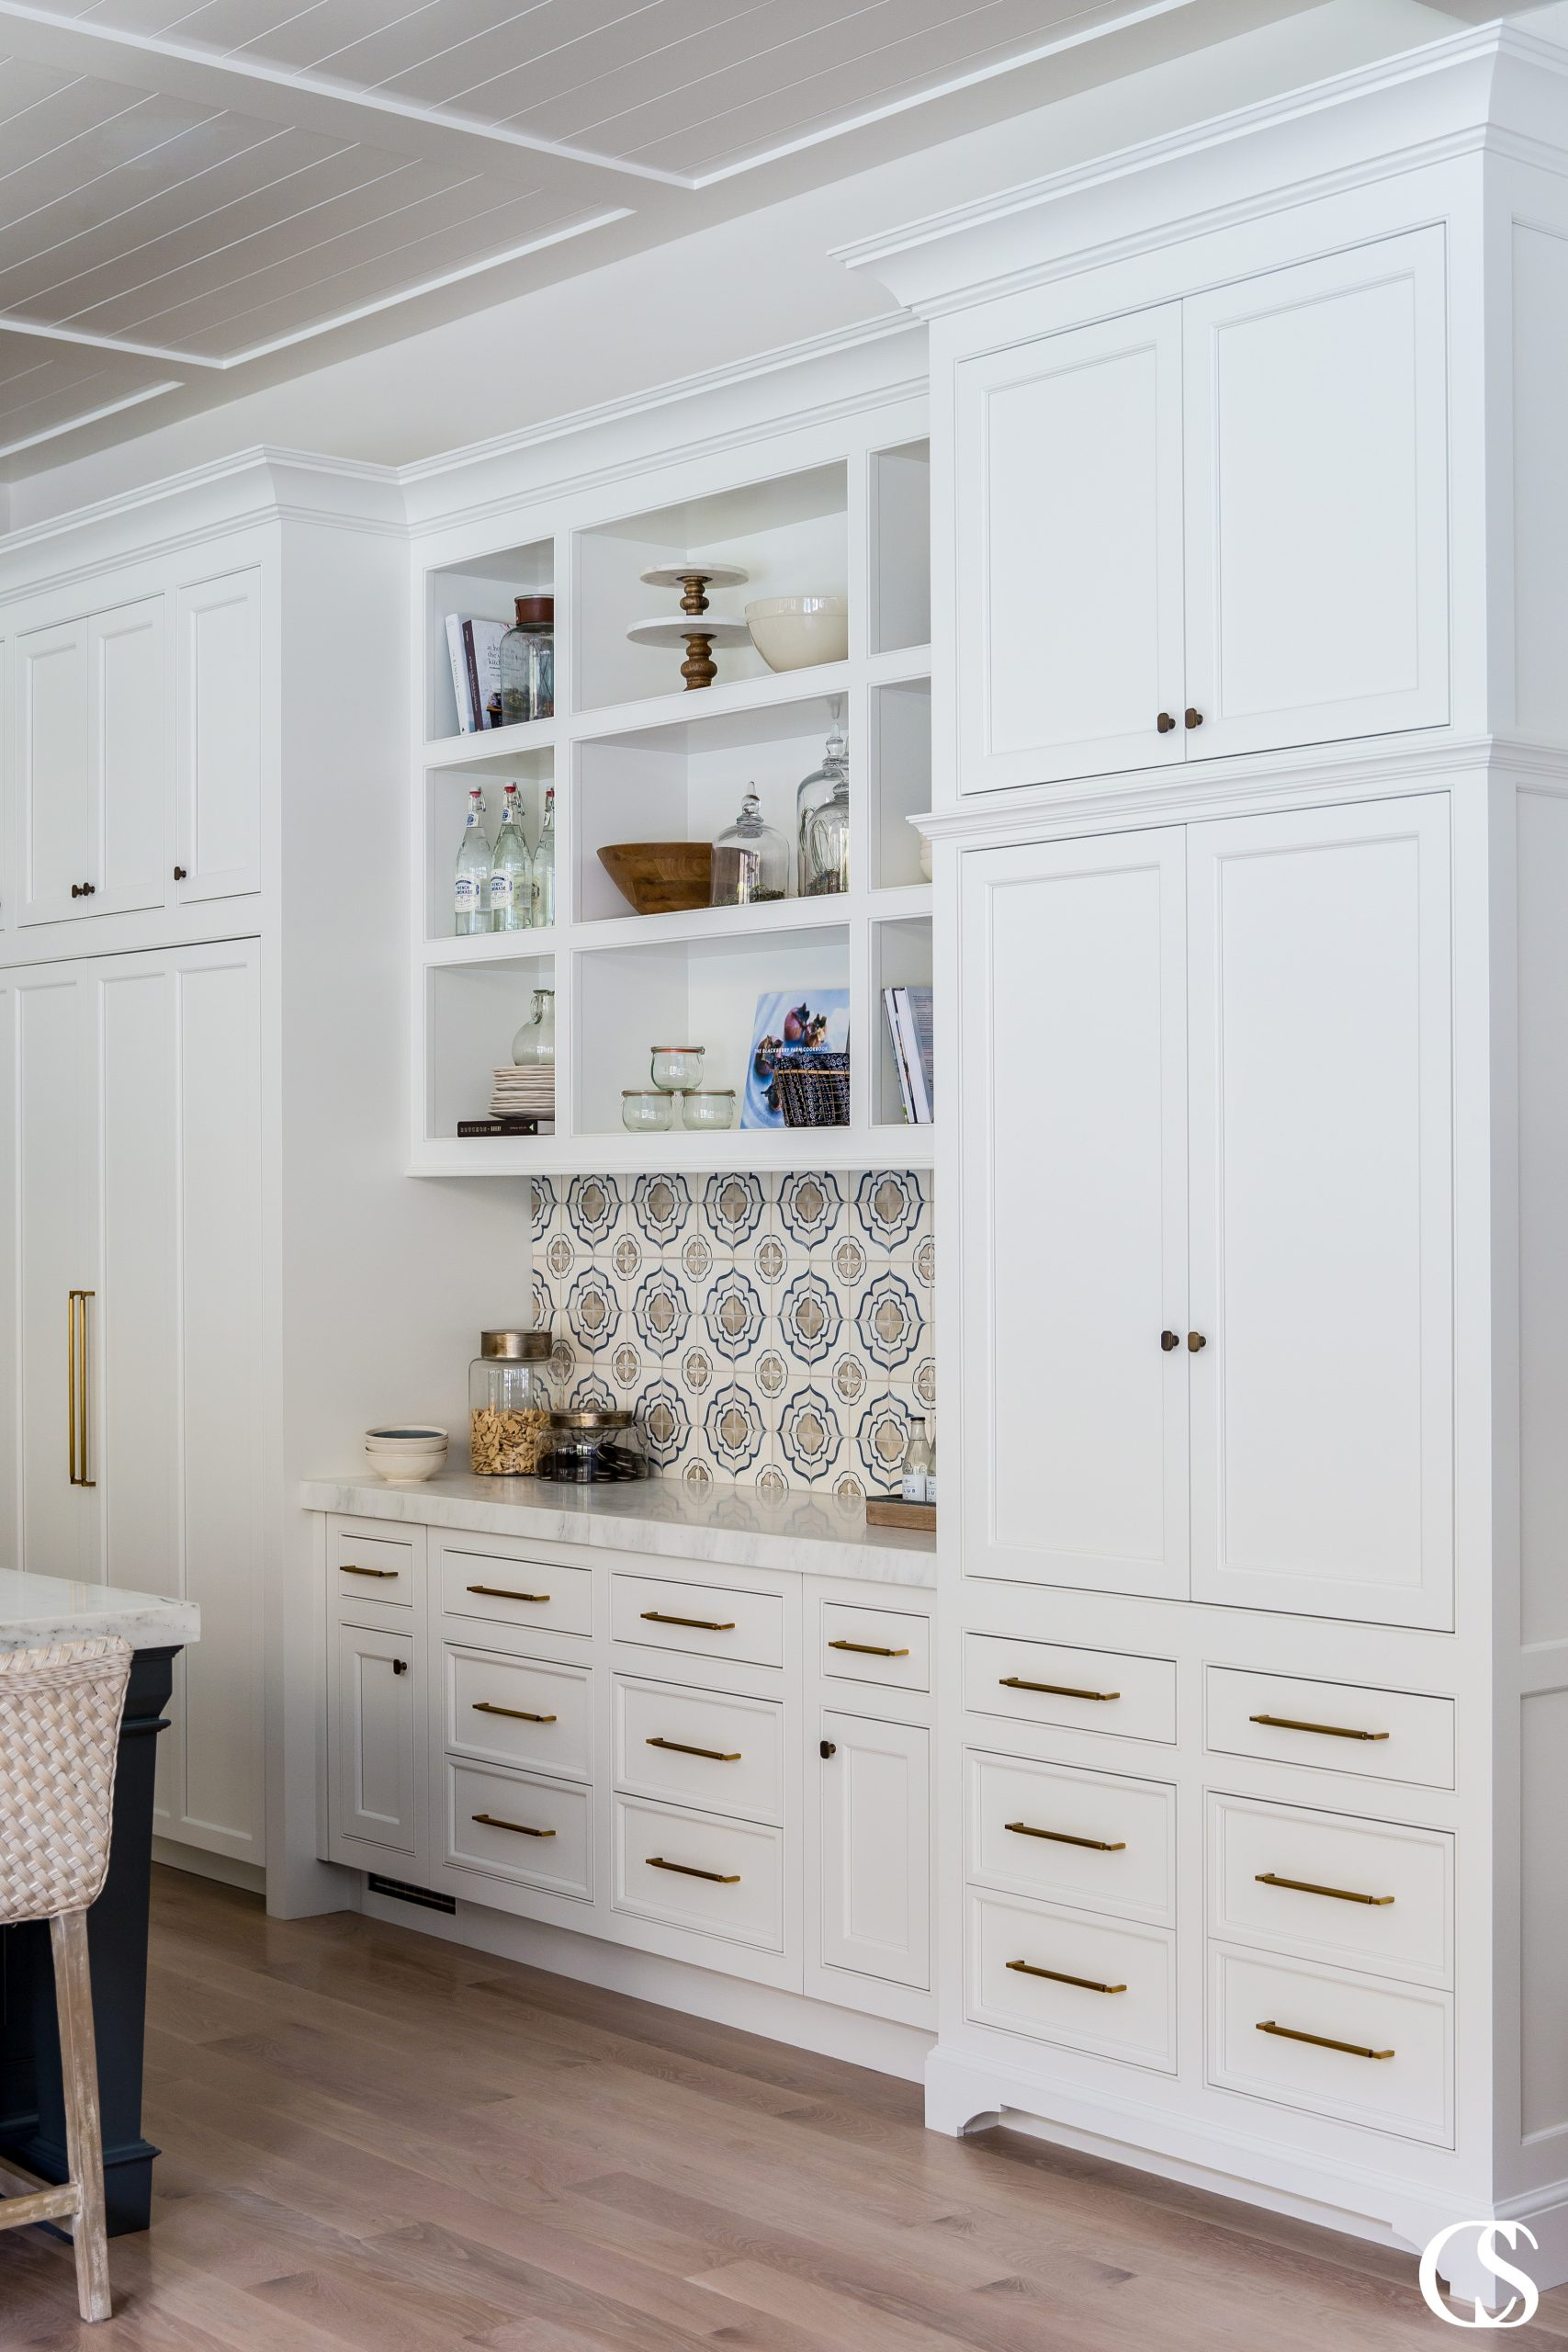 This unique custom kitchen cabinet design conjures memories of a vintage kitchen while offering complementary modern elements to balance out the look. Dare you not to dream of that custom tile backsplash!